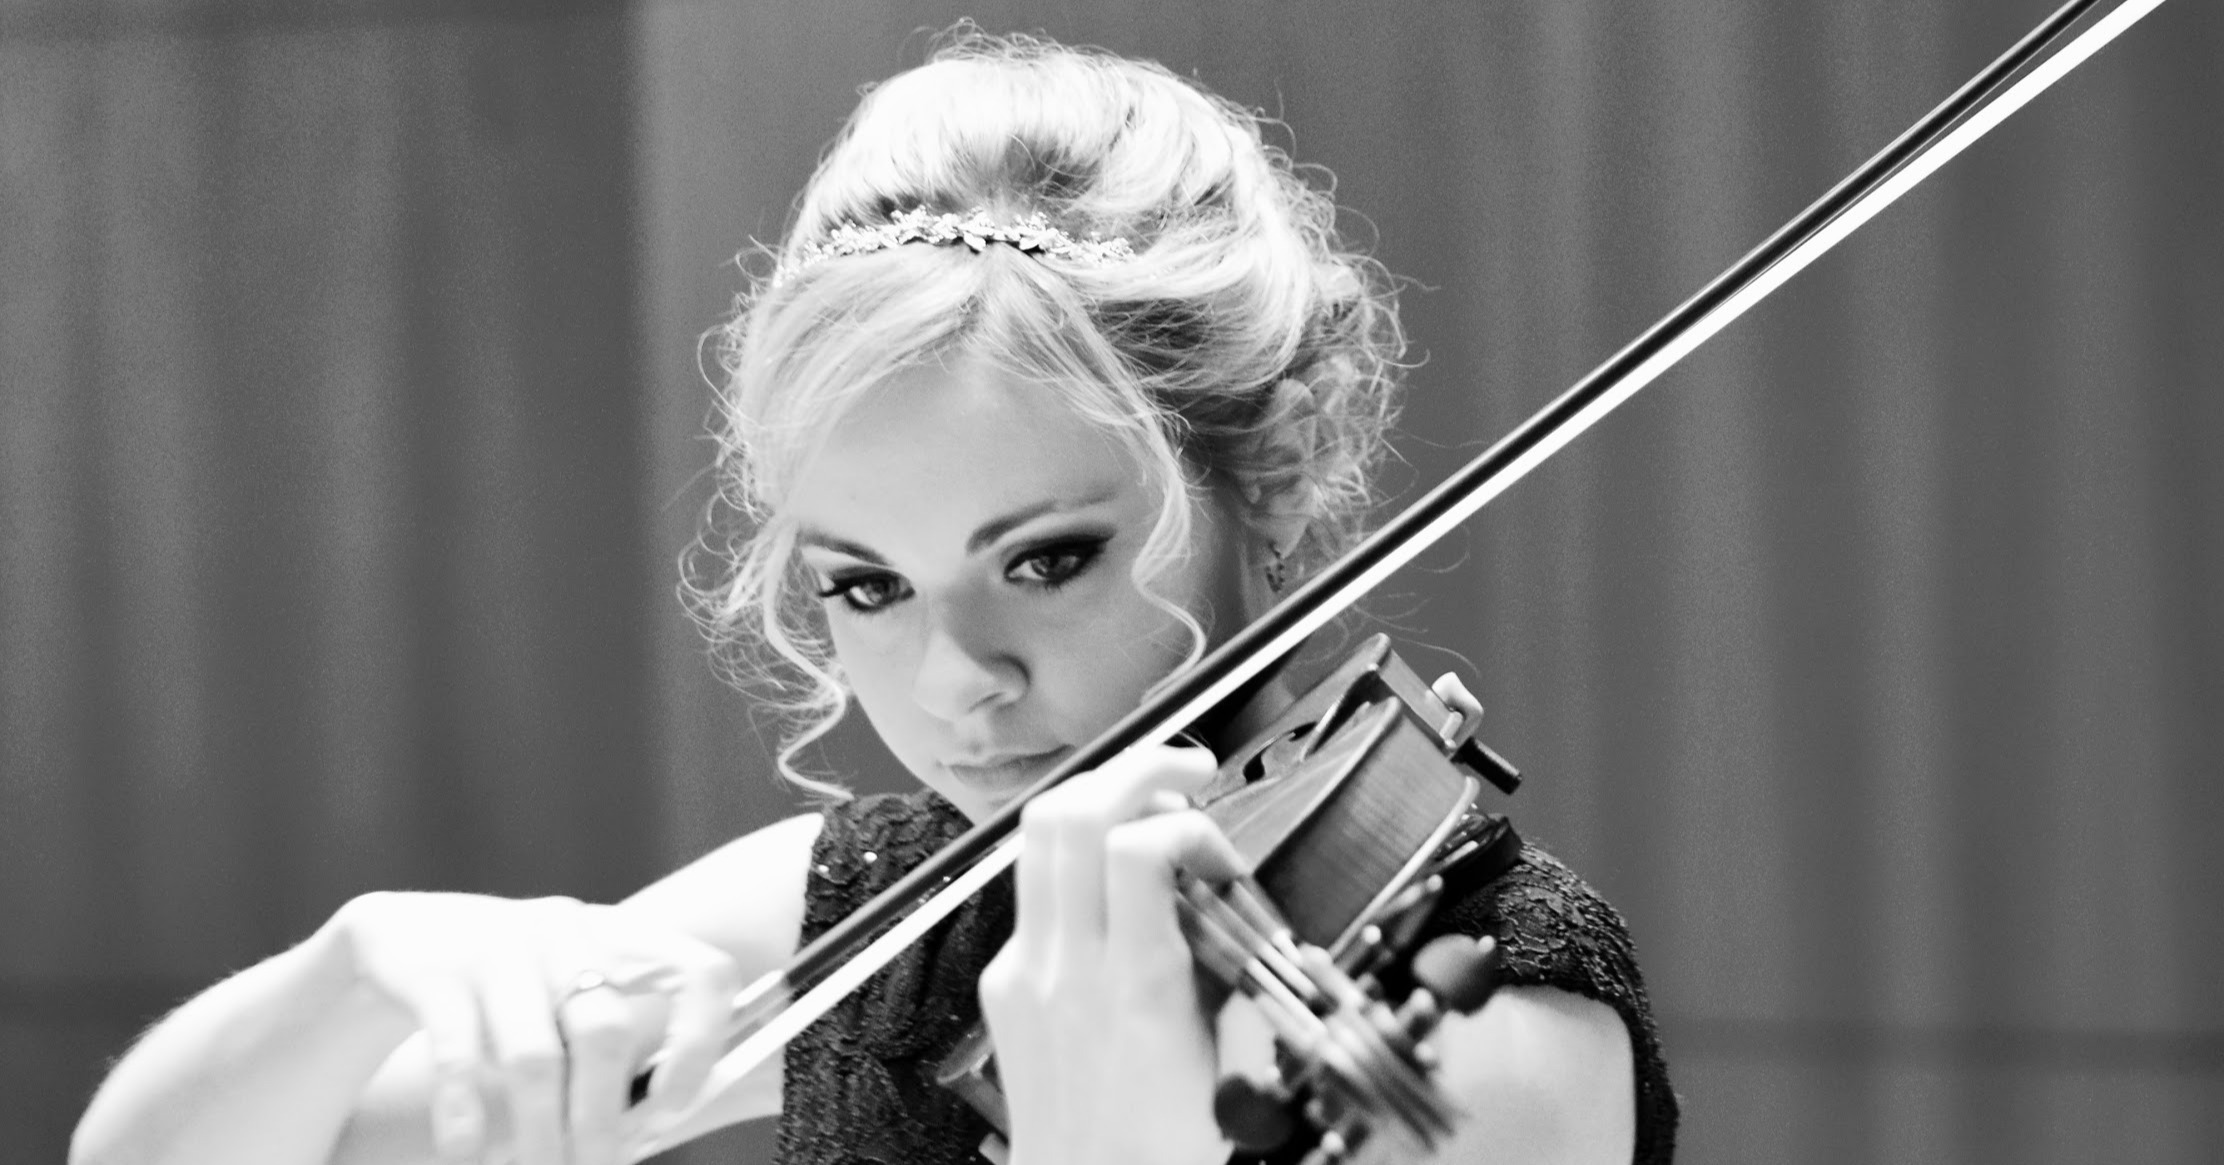 PA Virtual Graduate Awarded Violin Position at the Internationale Ensemble Modern Akademie